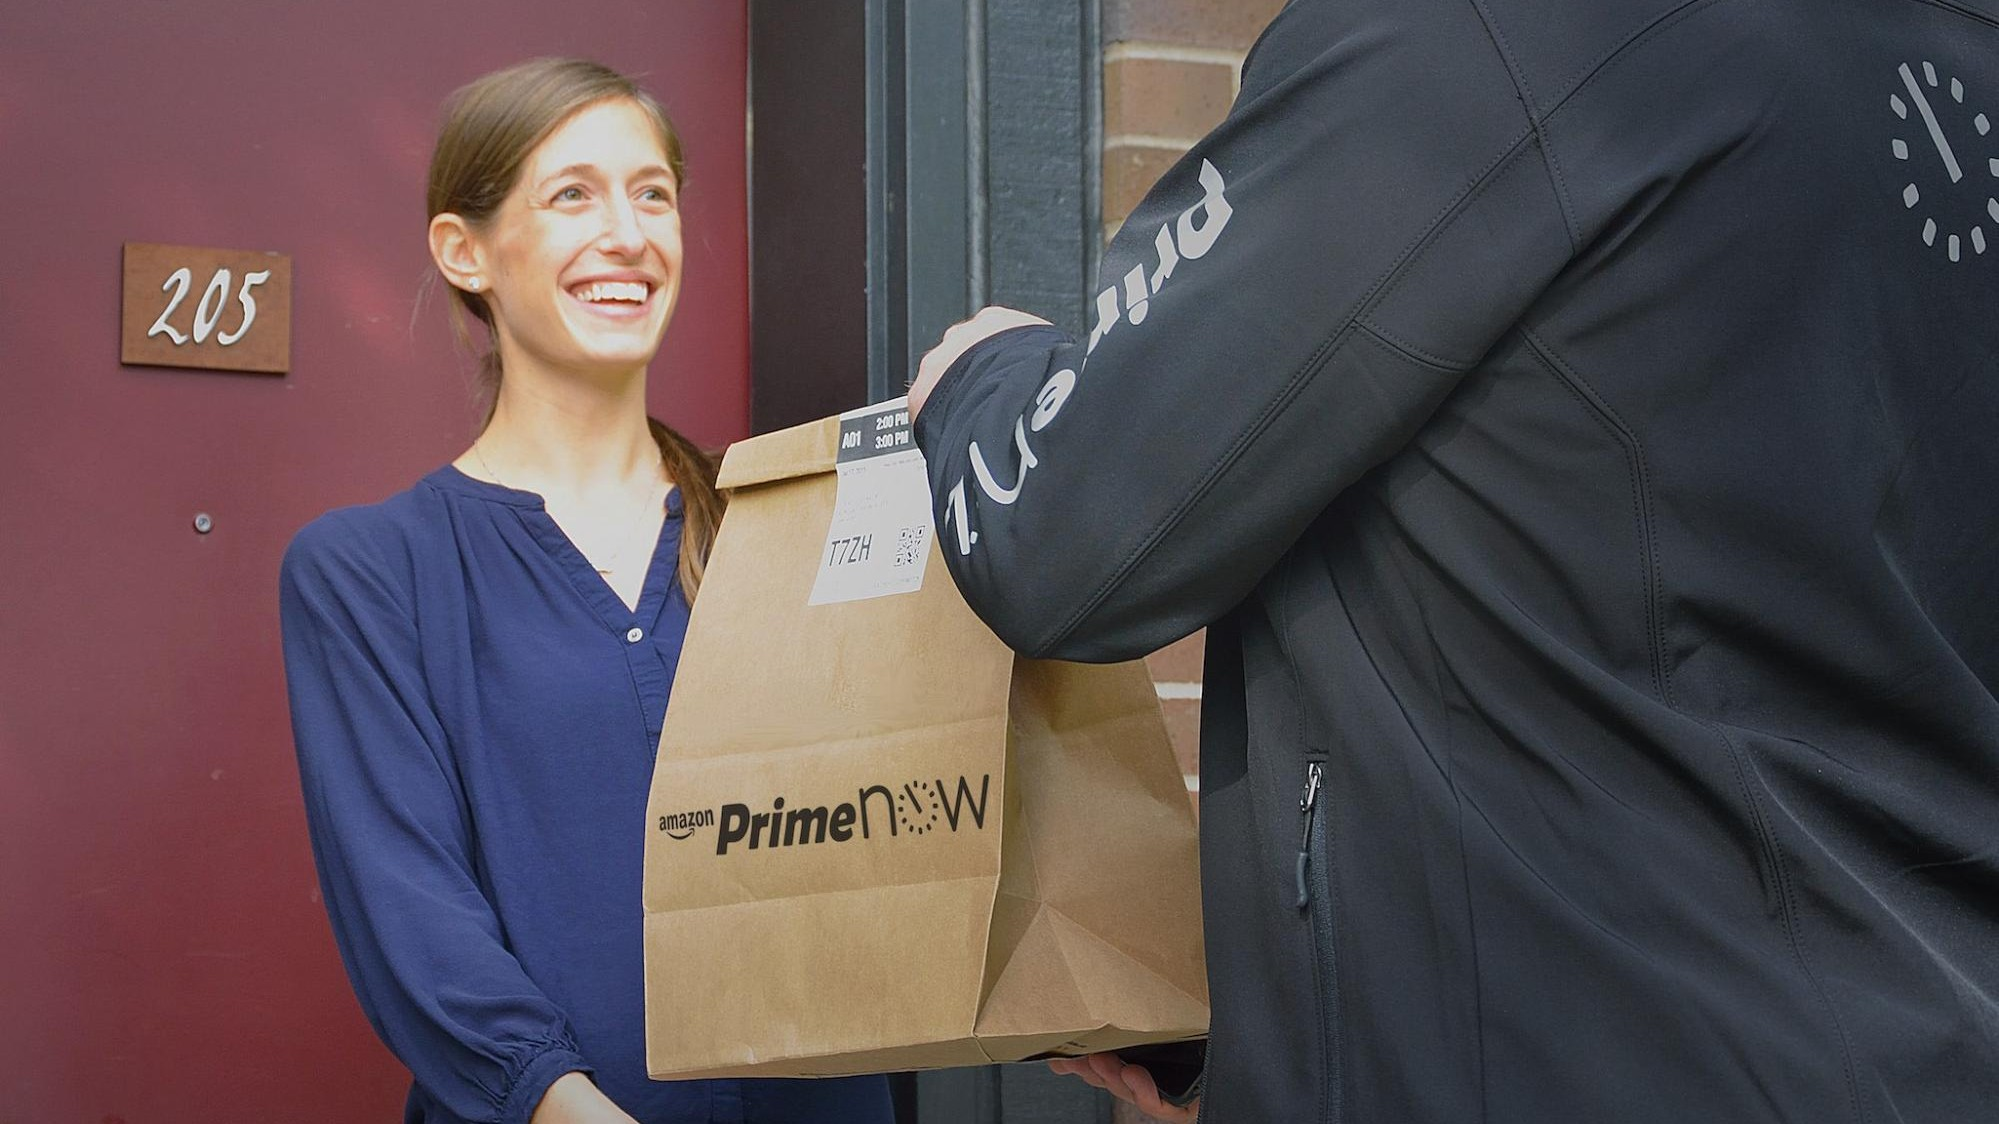 Amazon's New Delivery Service Is Basically Uber